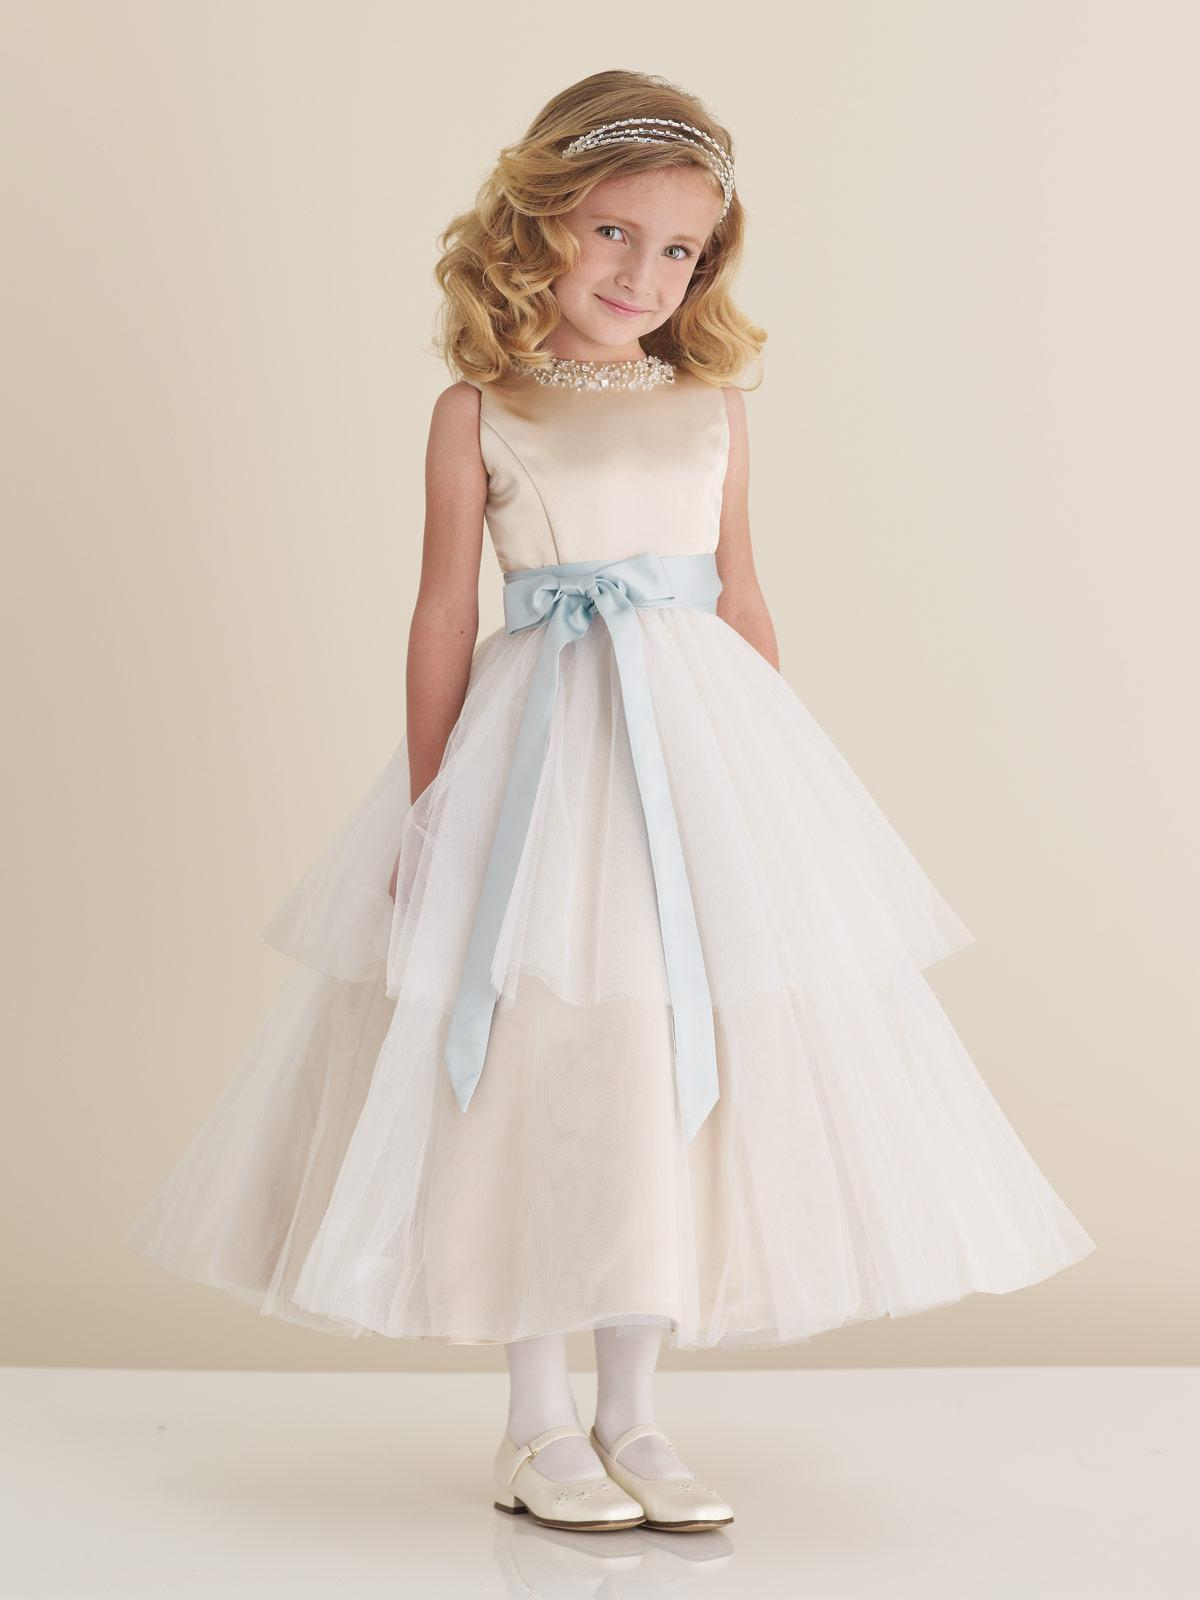 Image Result For Bride Dresses For Kids